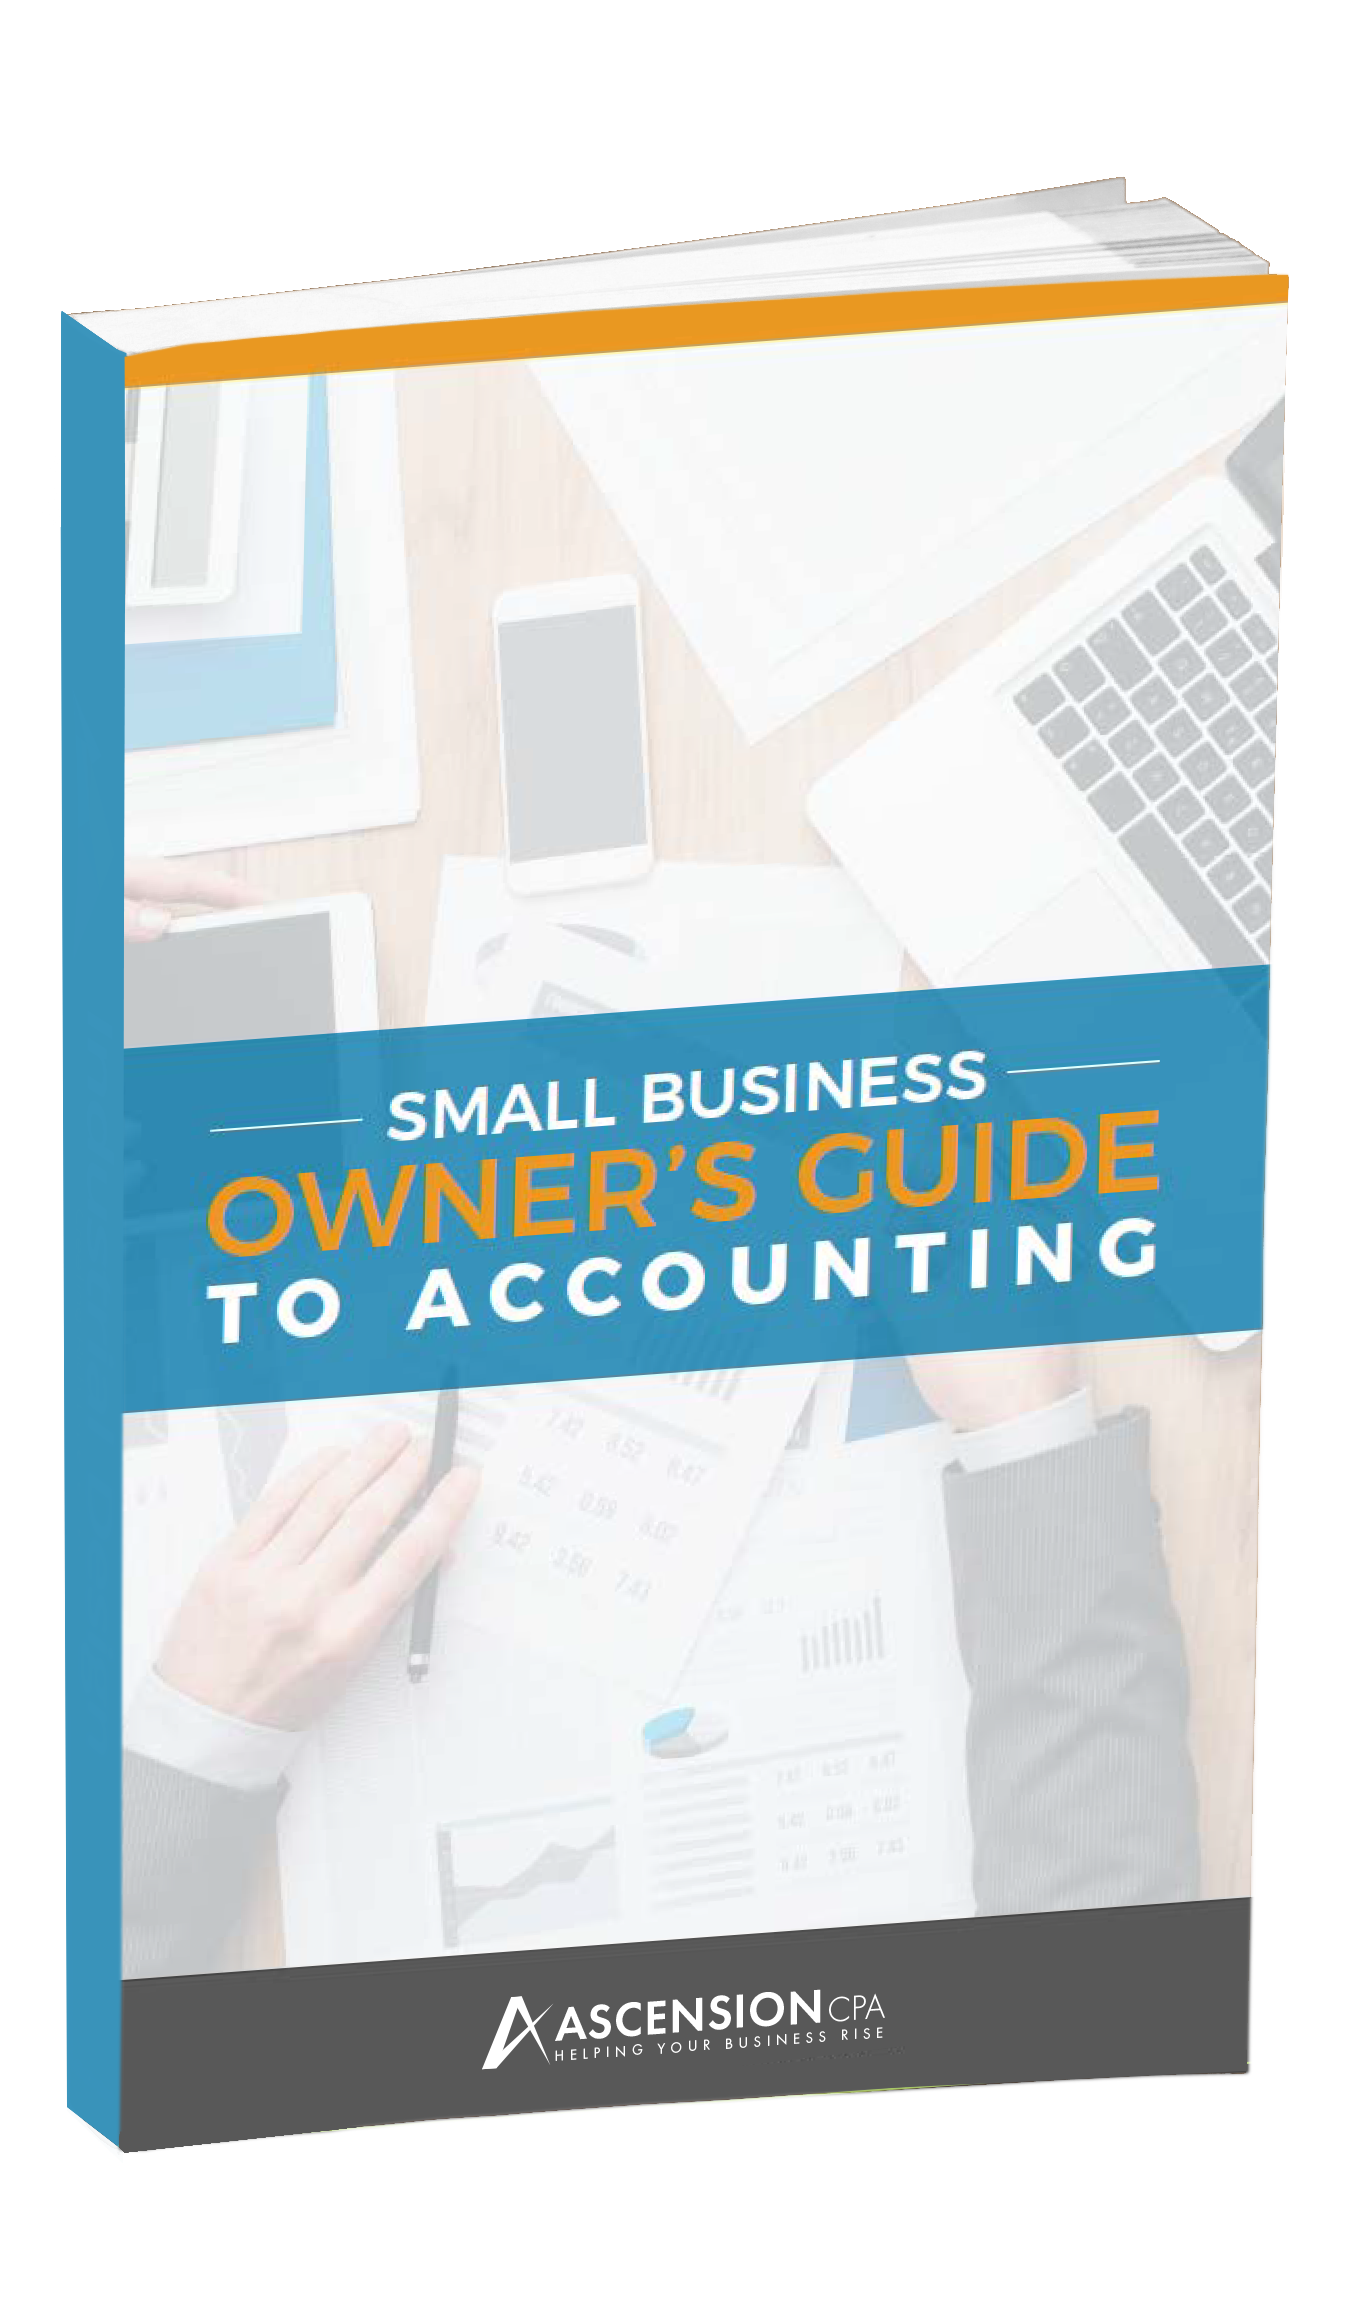 SMB Owners Guide to Accounting Book